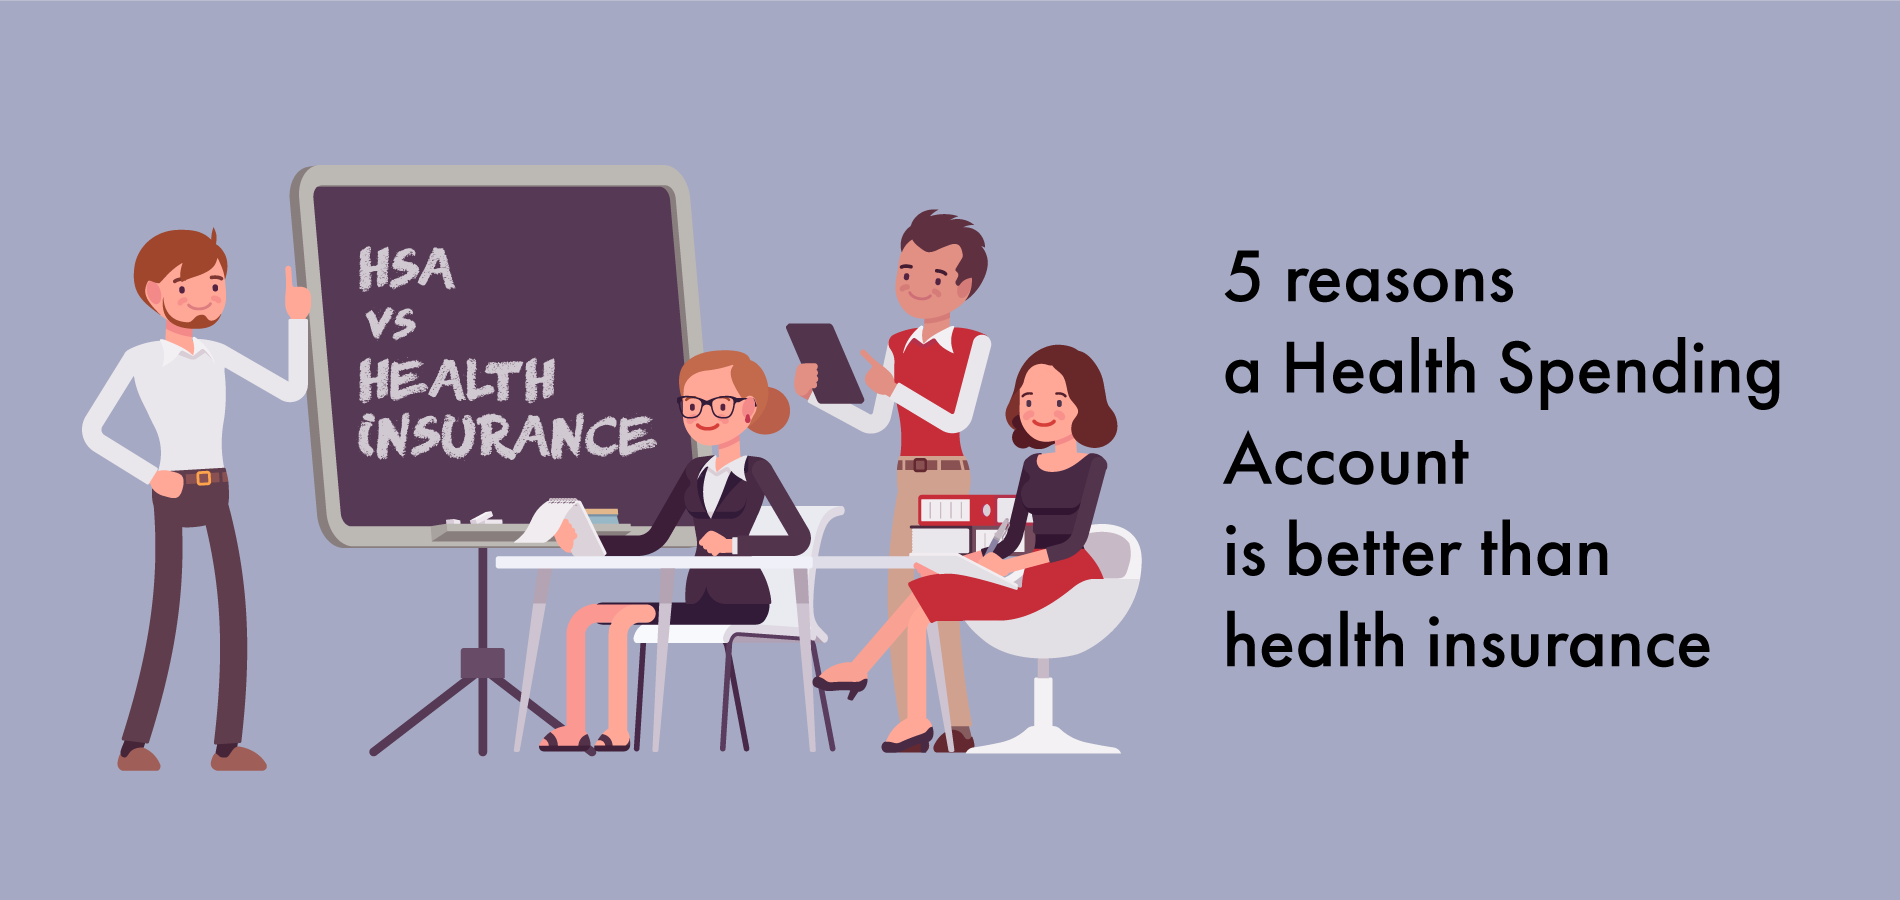 5 reasons a Health Spending Account is better than health insurance